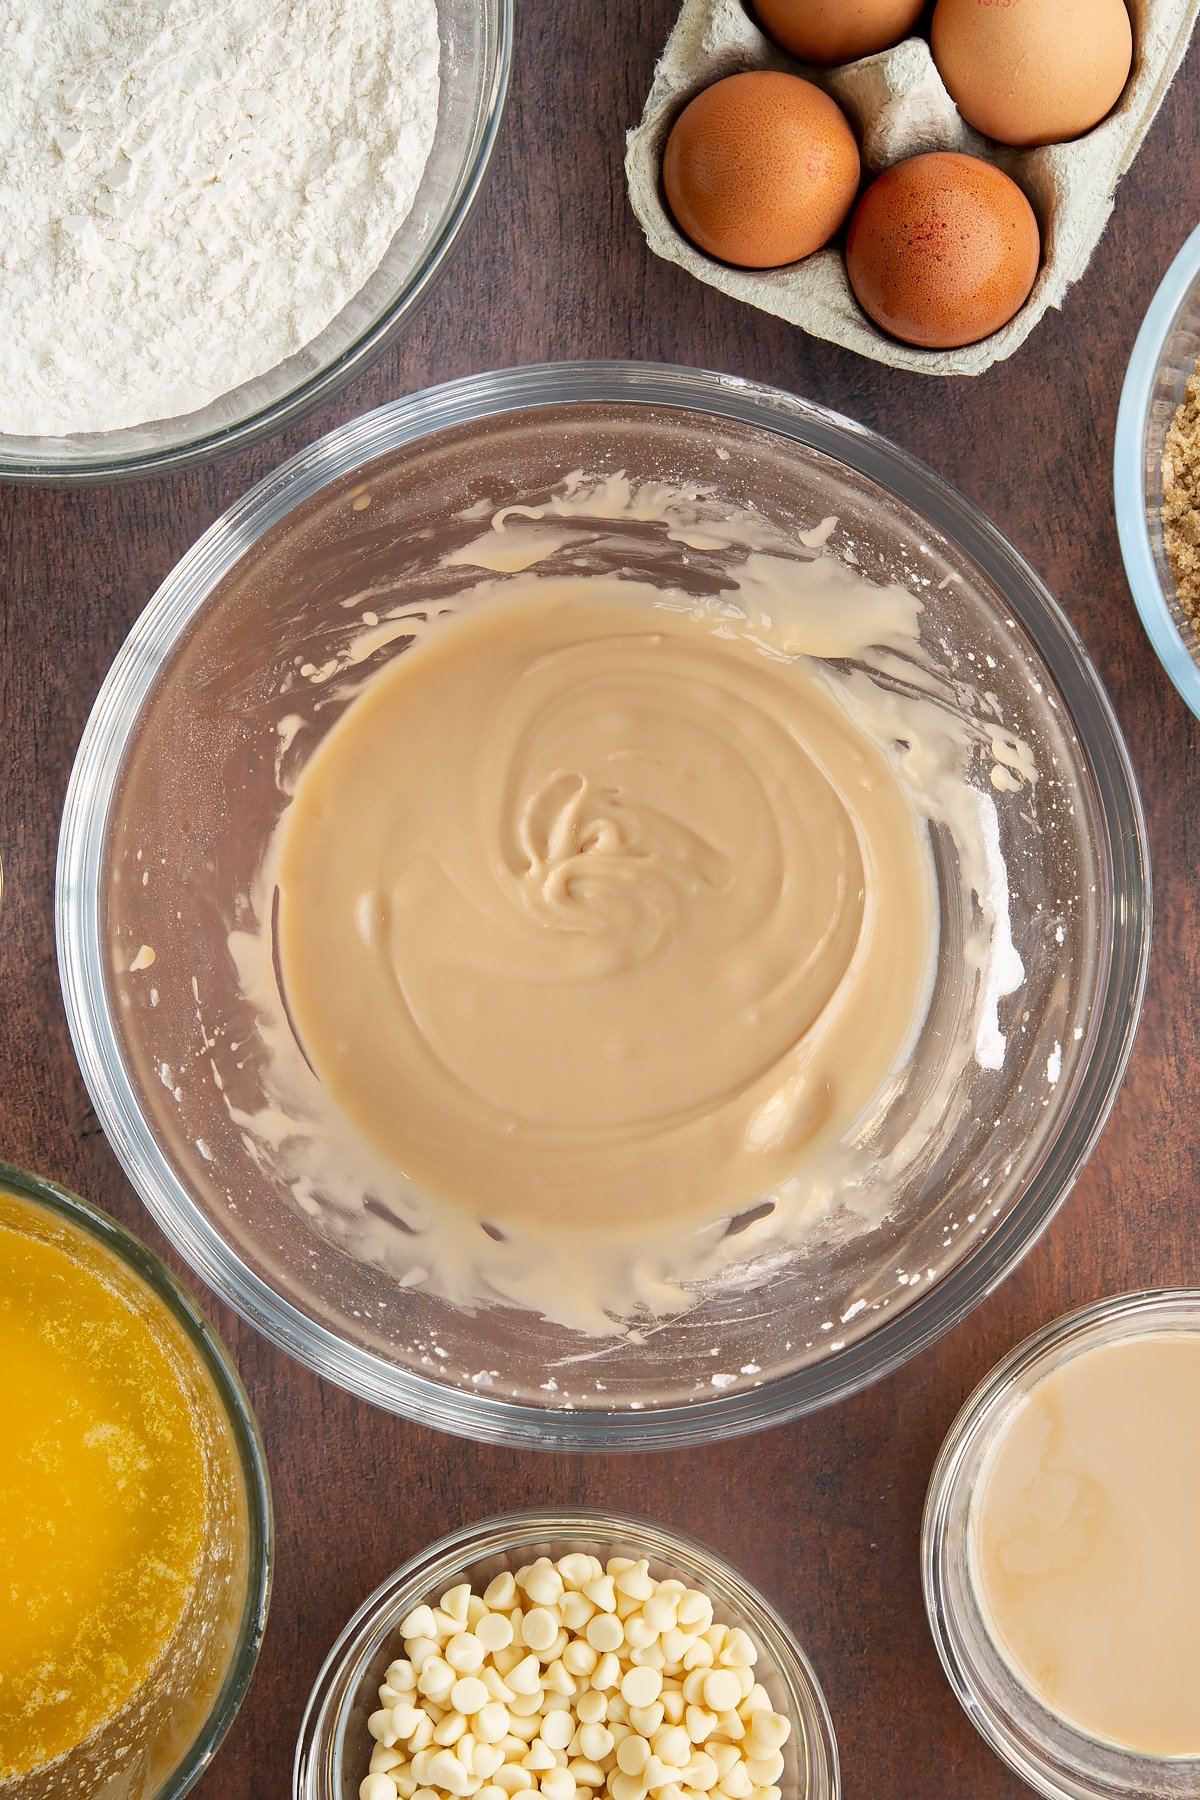 Baileys icing in a glass mixing bowl. Ingredients to make Baileys blondies surround the bowl.